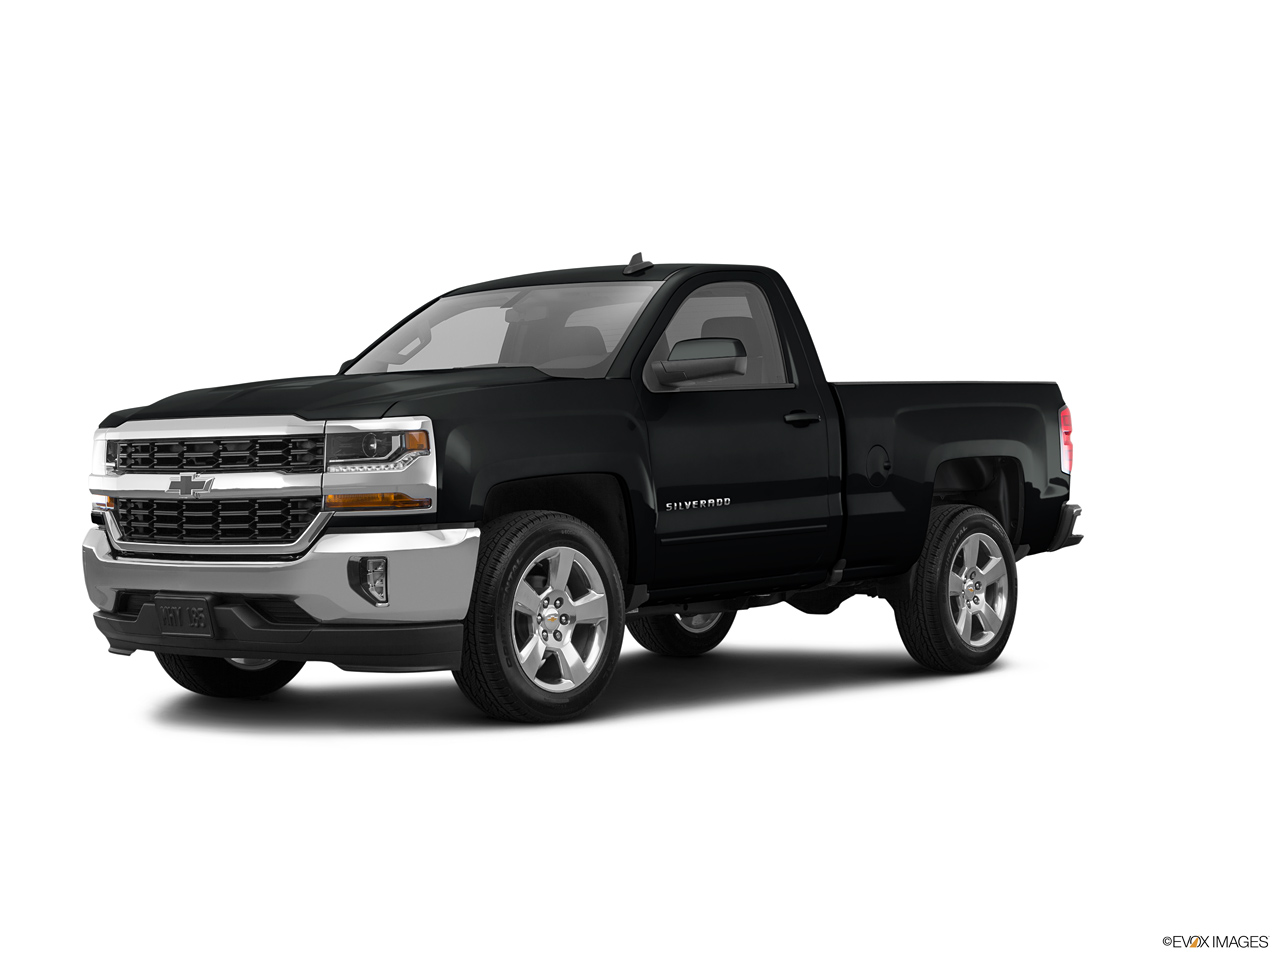 Car Pictures List For Chevrolet Silverado 2016 1500 Uae